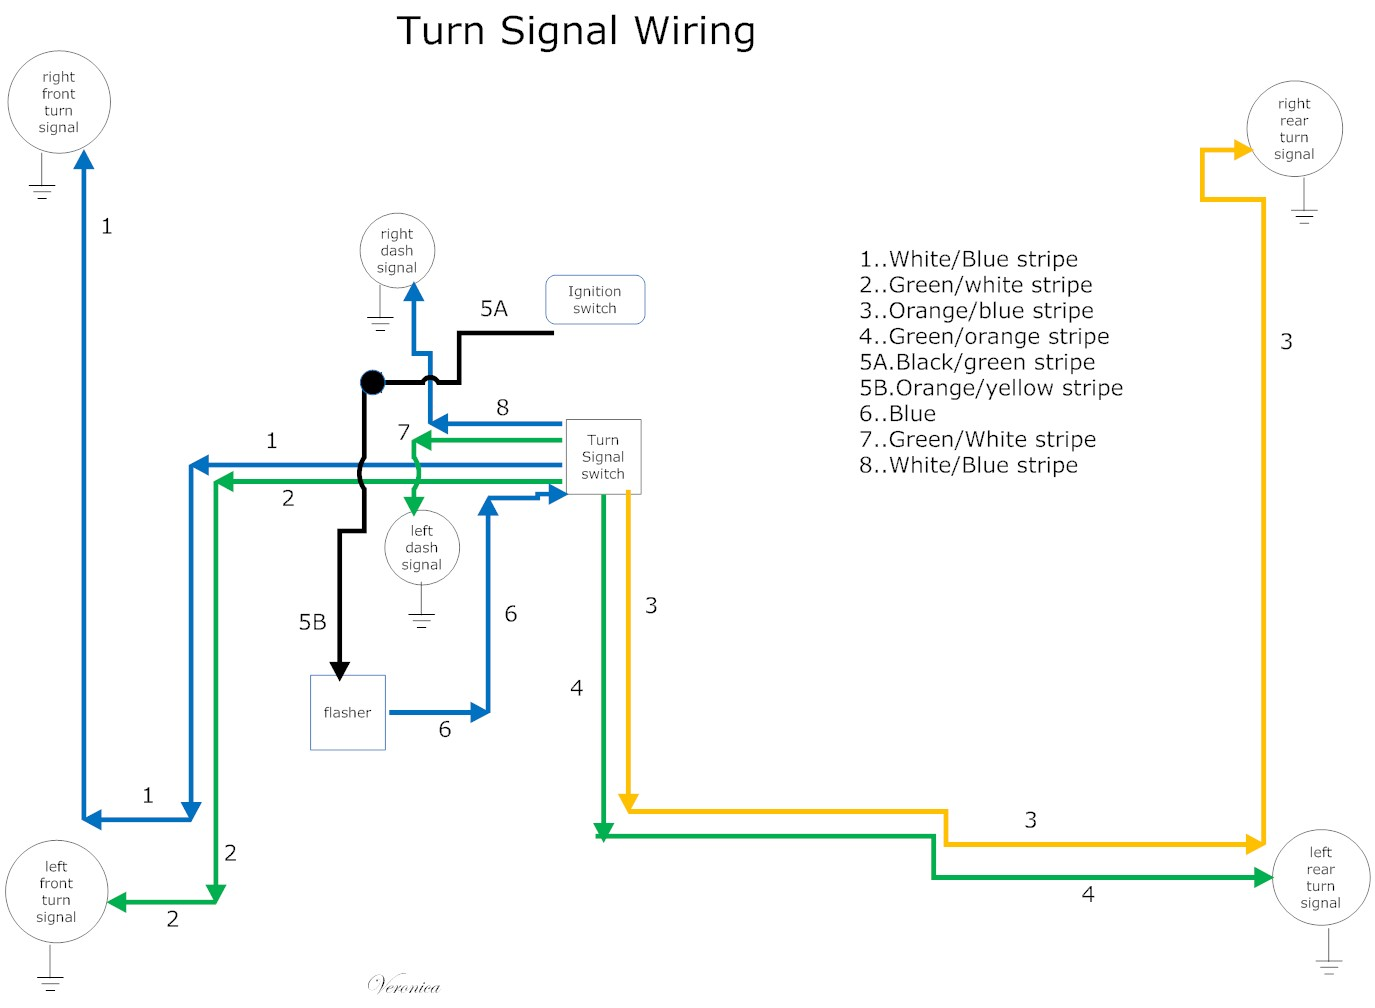 Turn+signal+Wiring the care and feeding of ponies 1965 1966 mustang turn signal 2015 mustang wiring diagram at webbmarketing.co